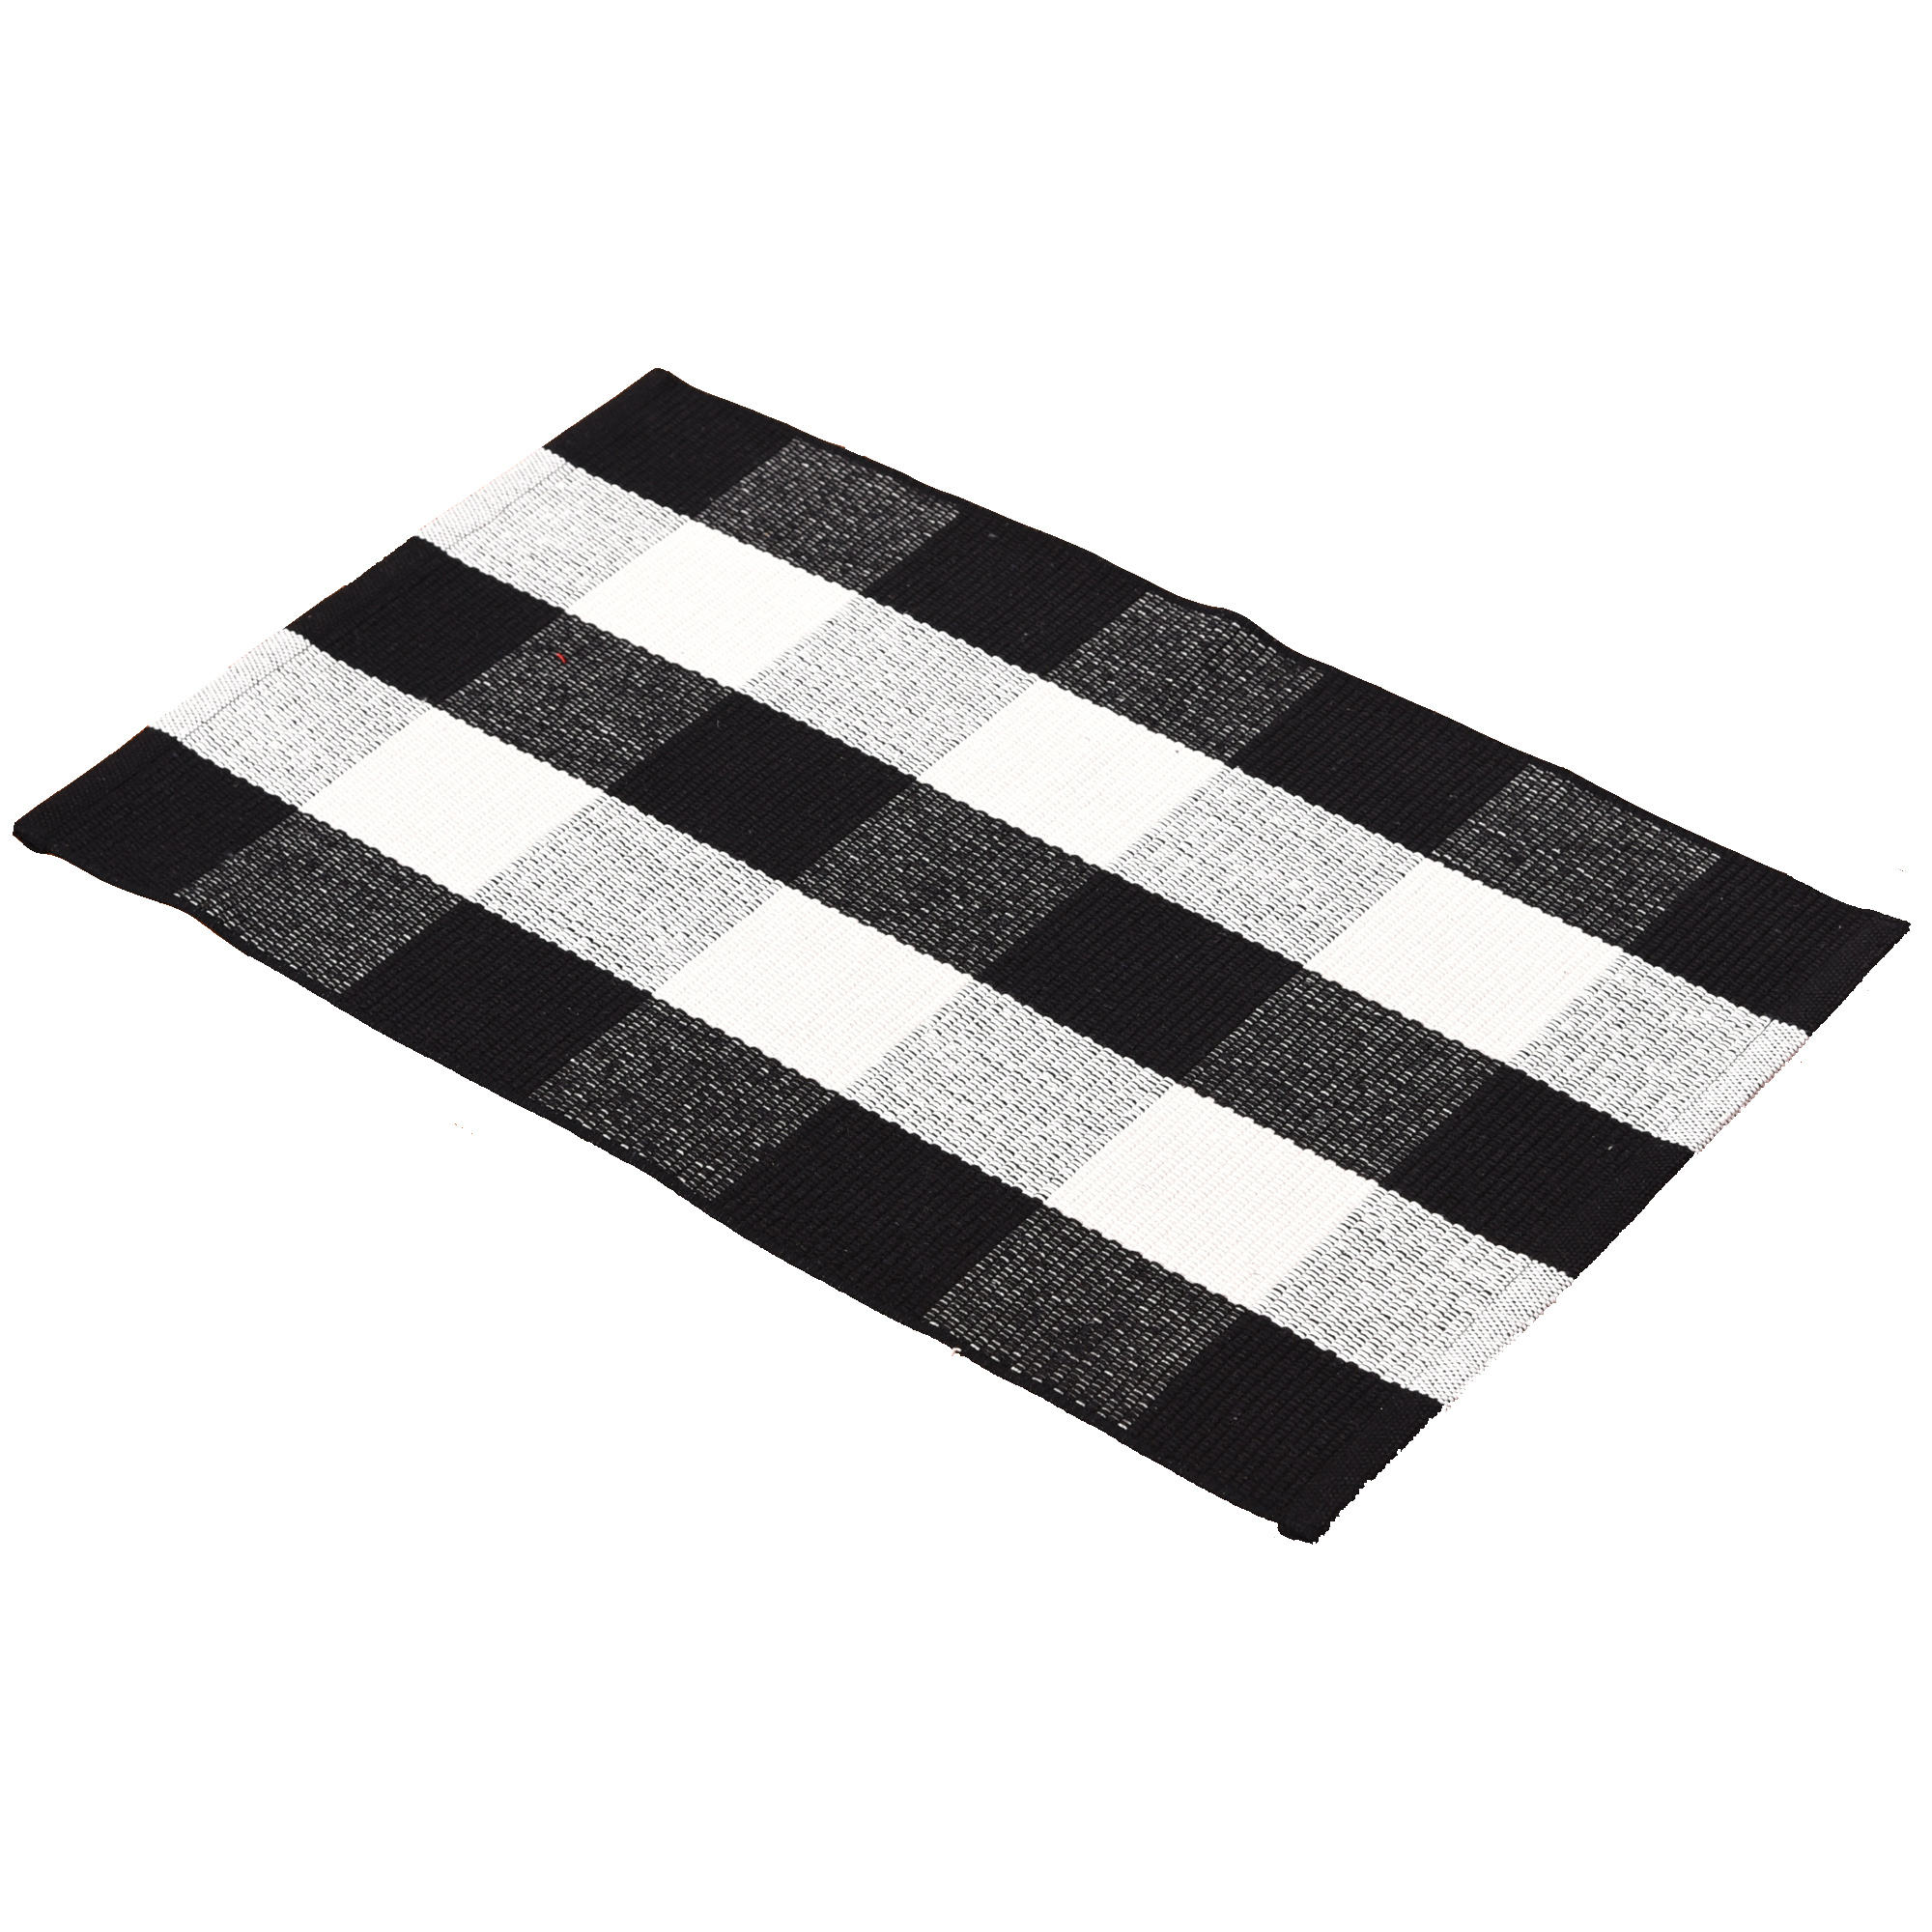 Chinese cotton woven black and white buffalo plaid rug bedroom bathroom floor mat for living room washable buffalo check carpet